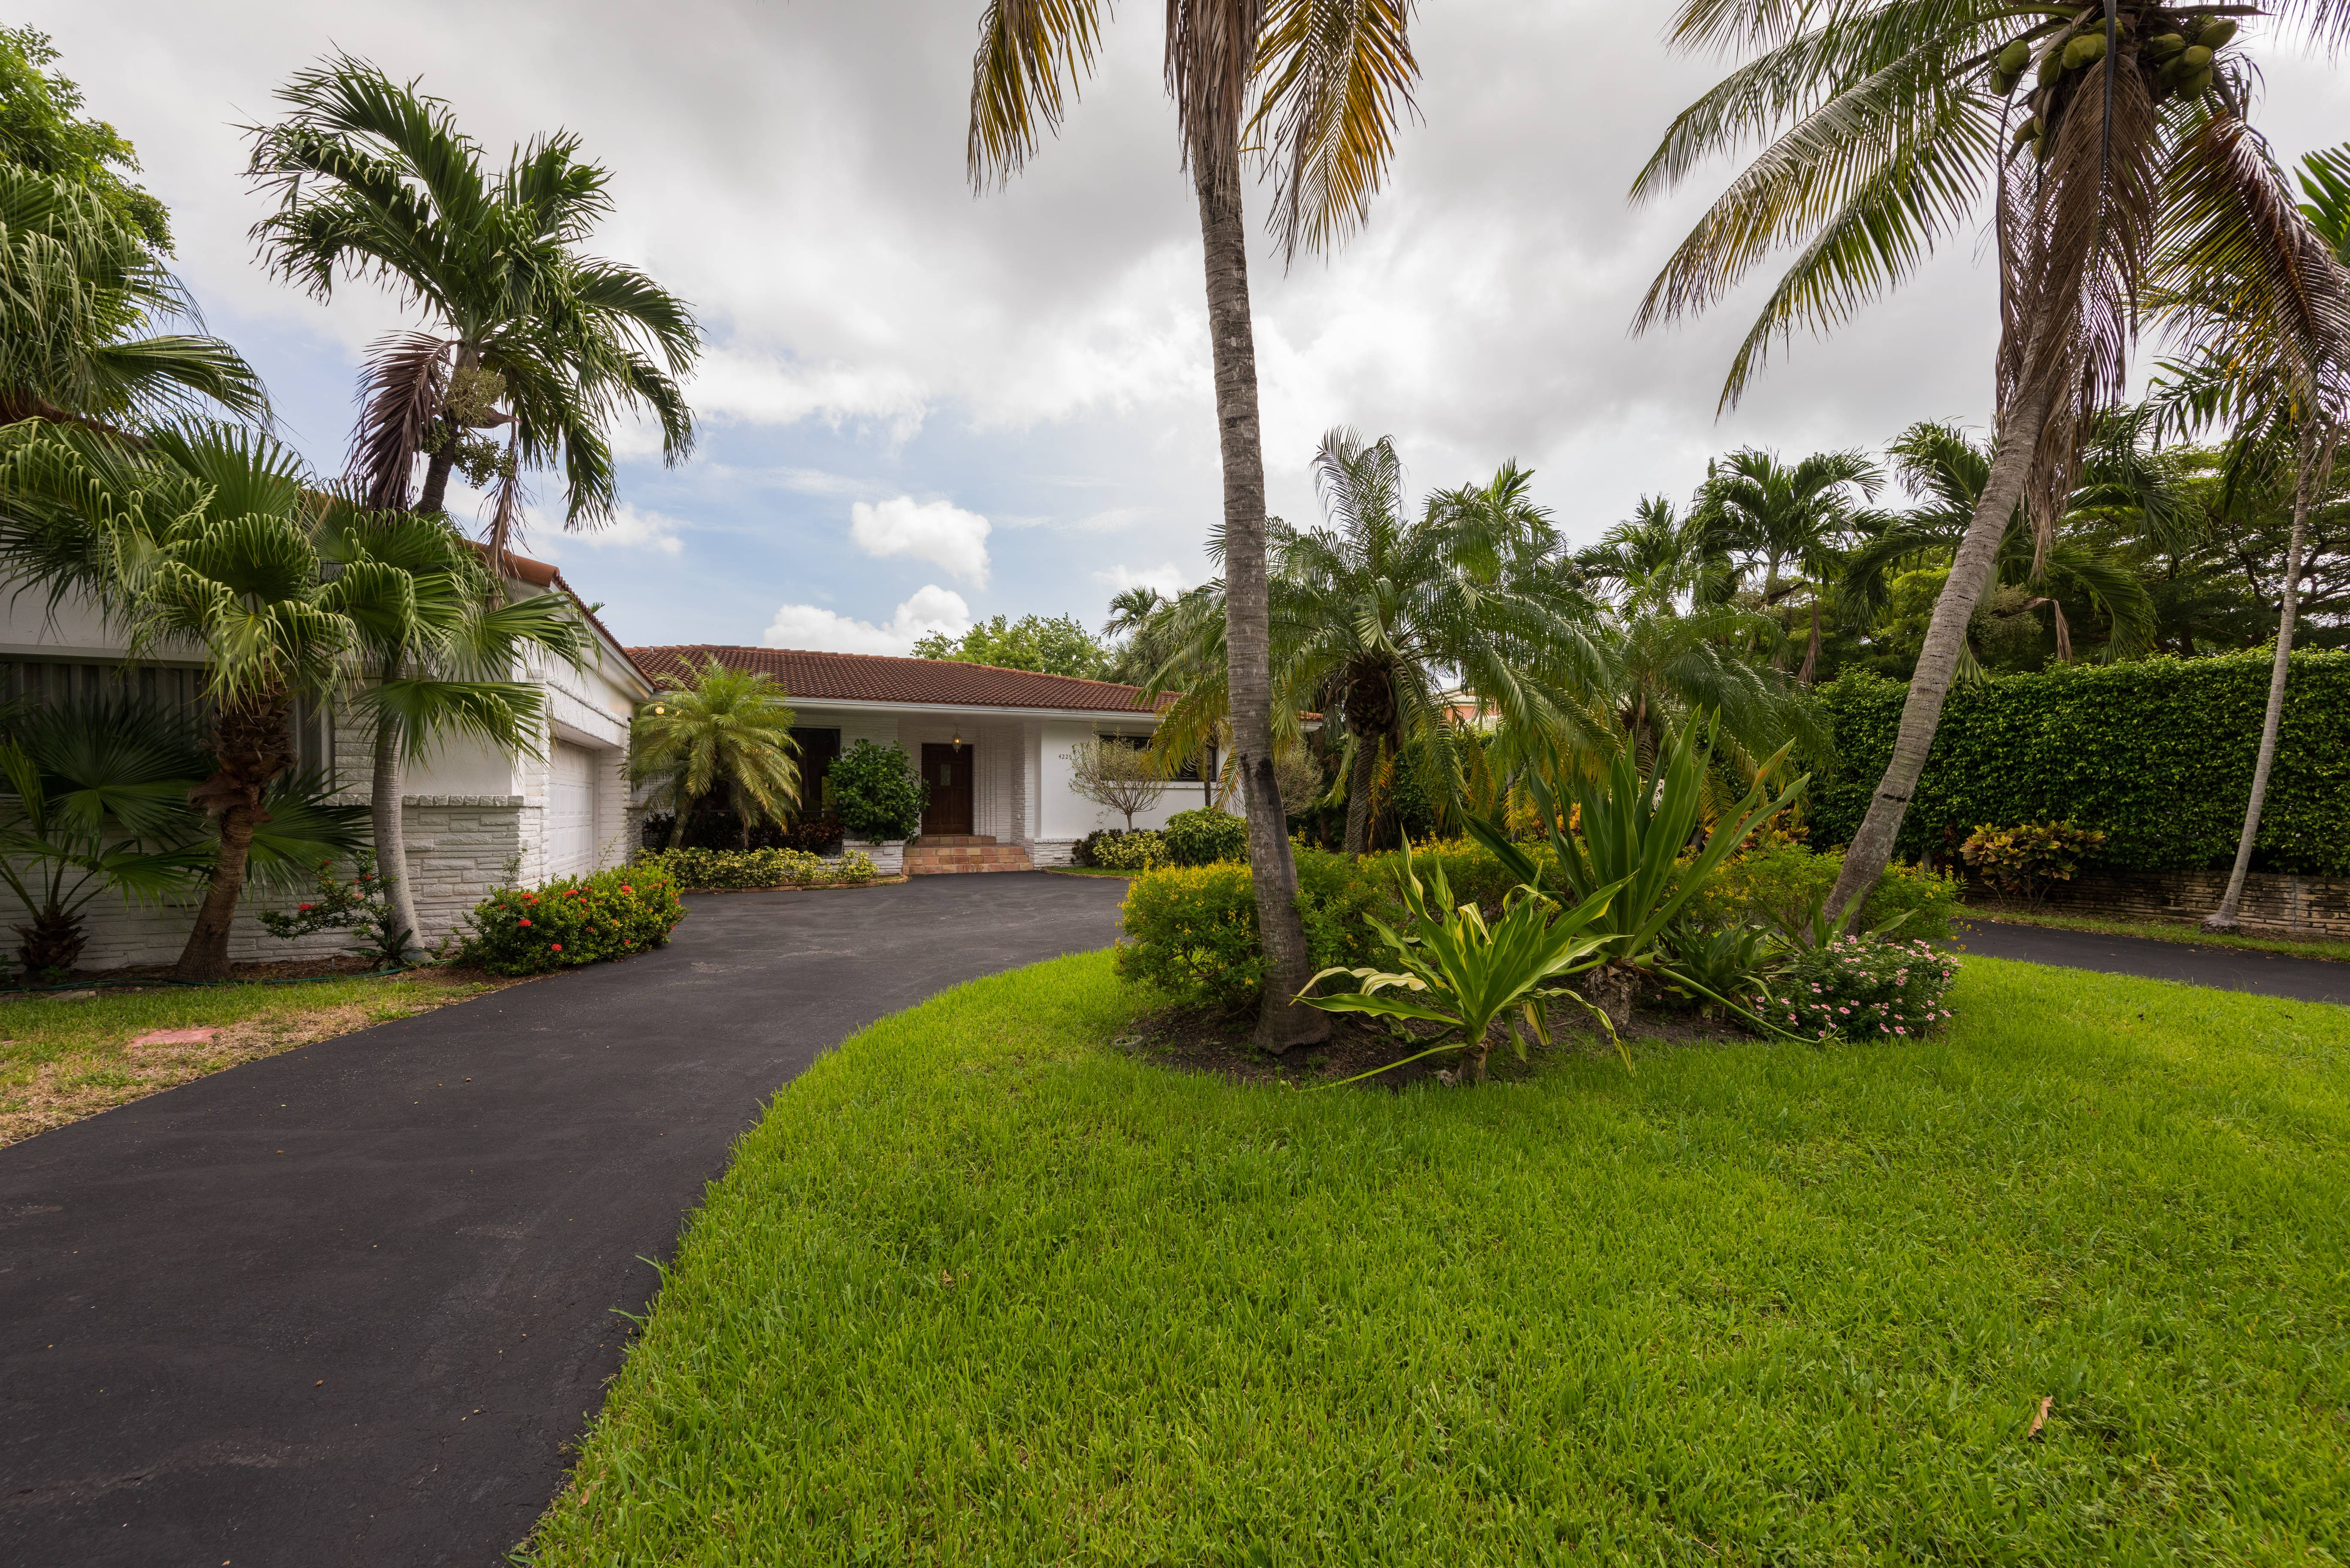 Miami Waterfront Homes For Sale Archives Miami Beach Real Estate